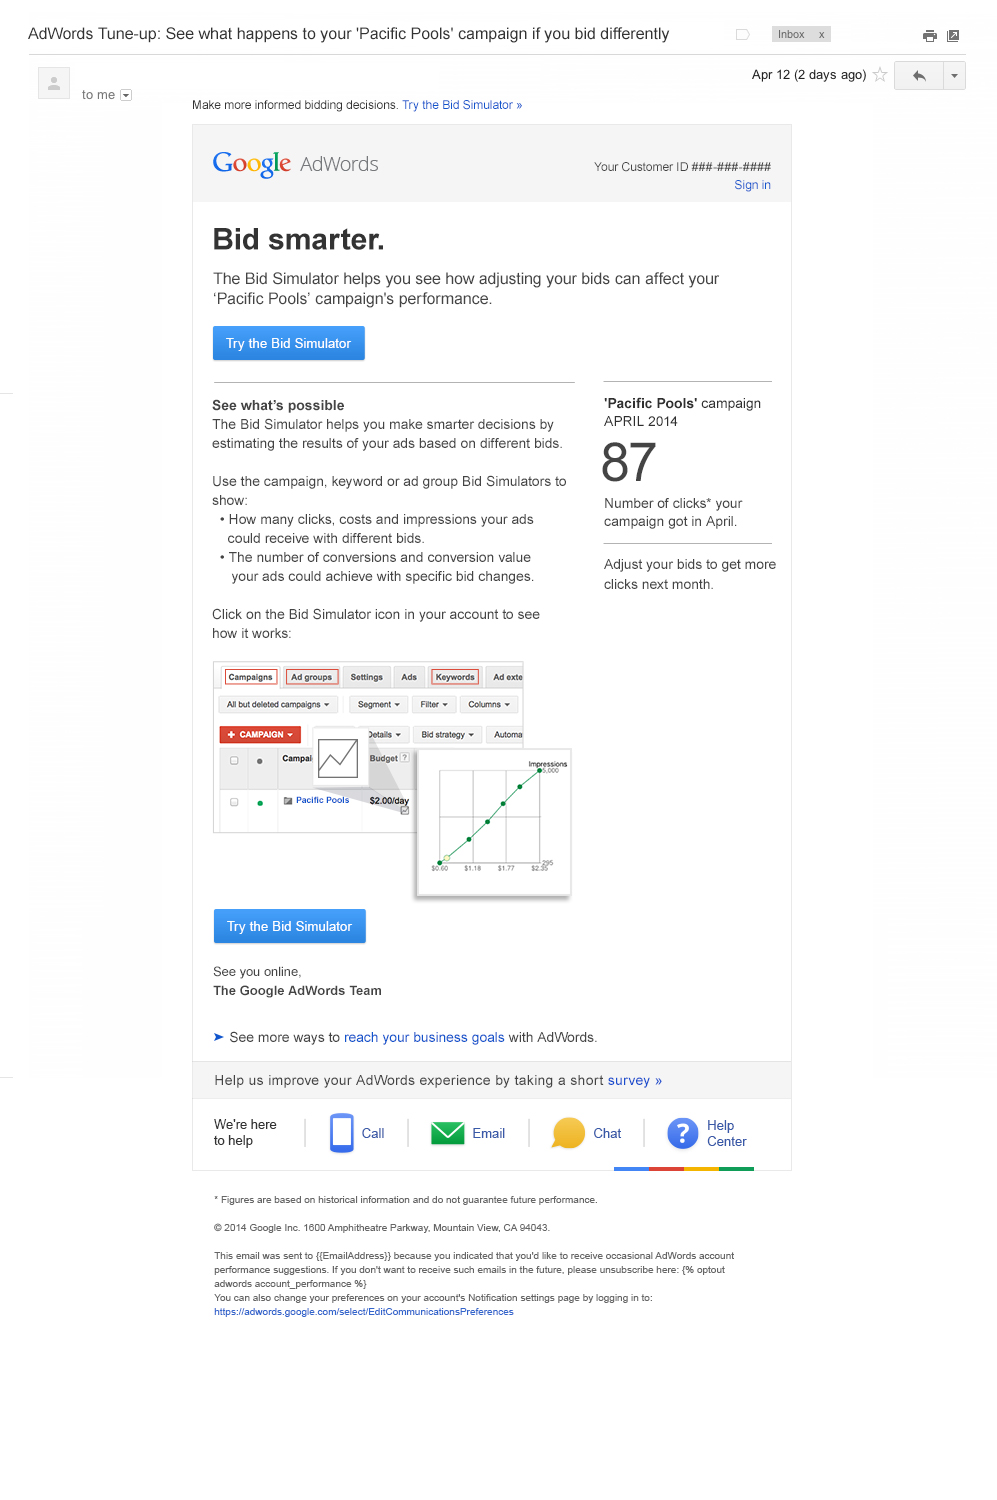 Boe Gatiss - AdWords Bid Simulator email for Google